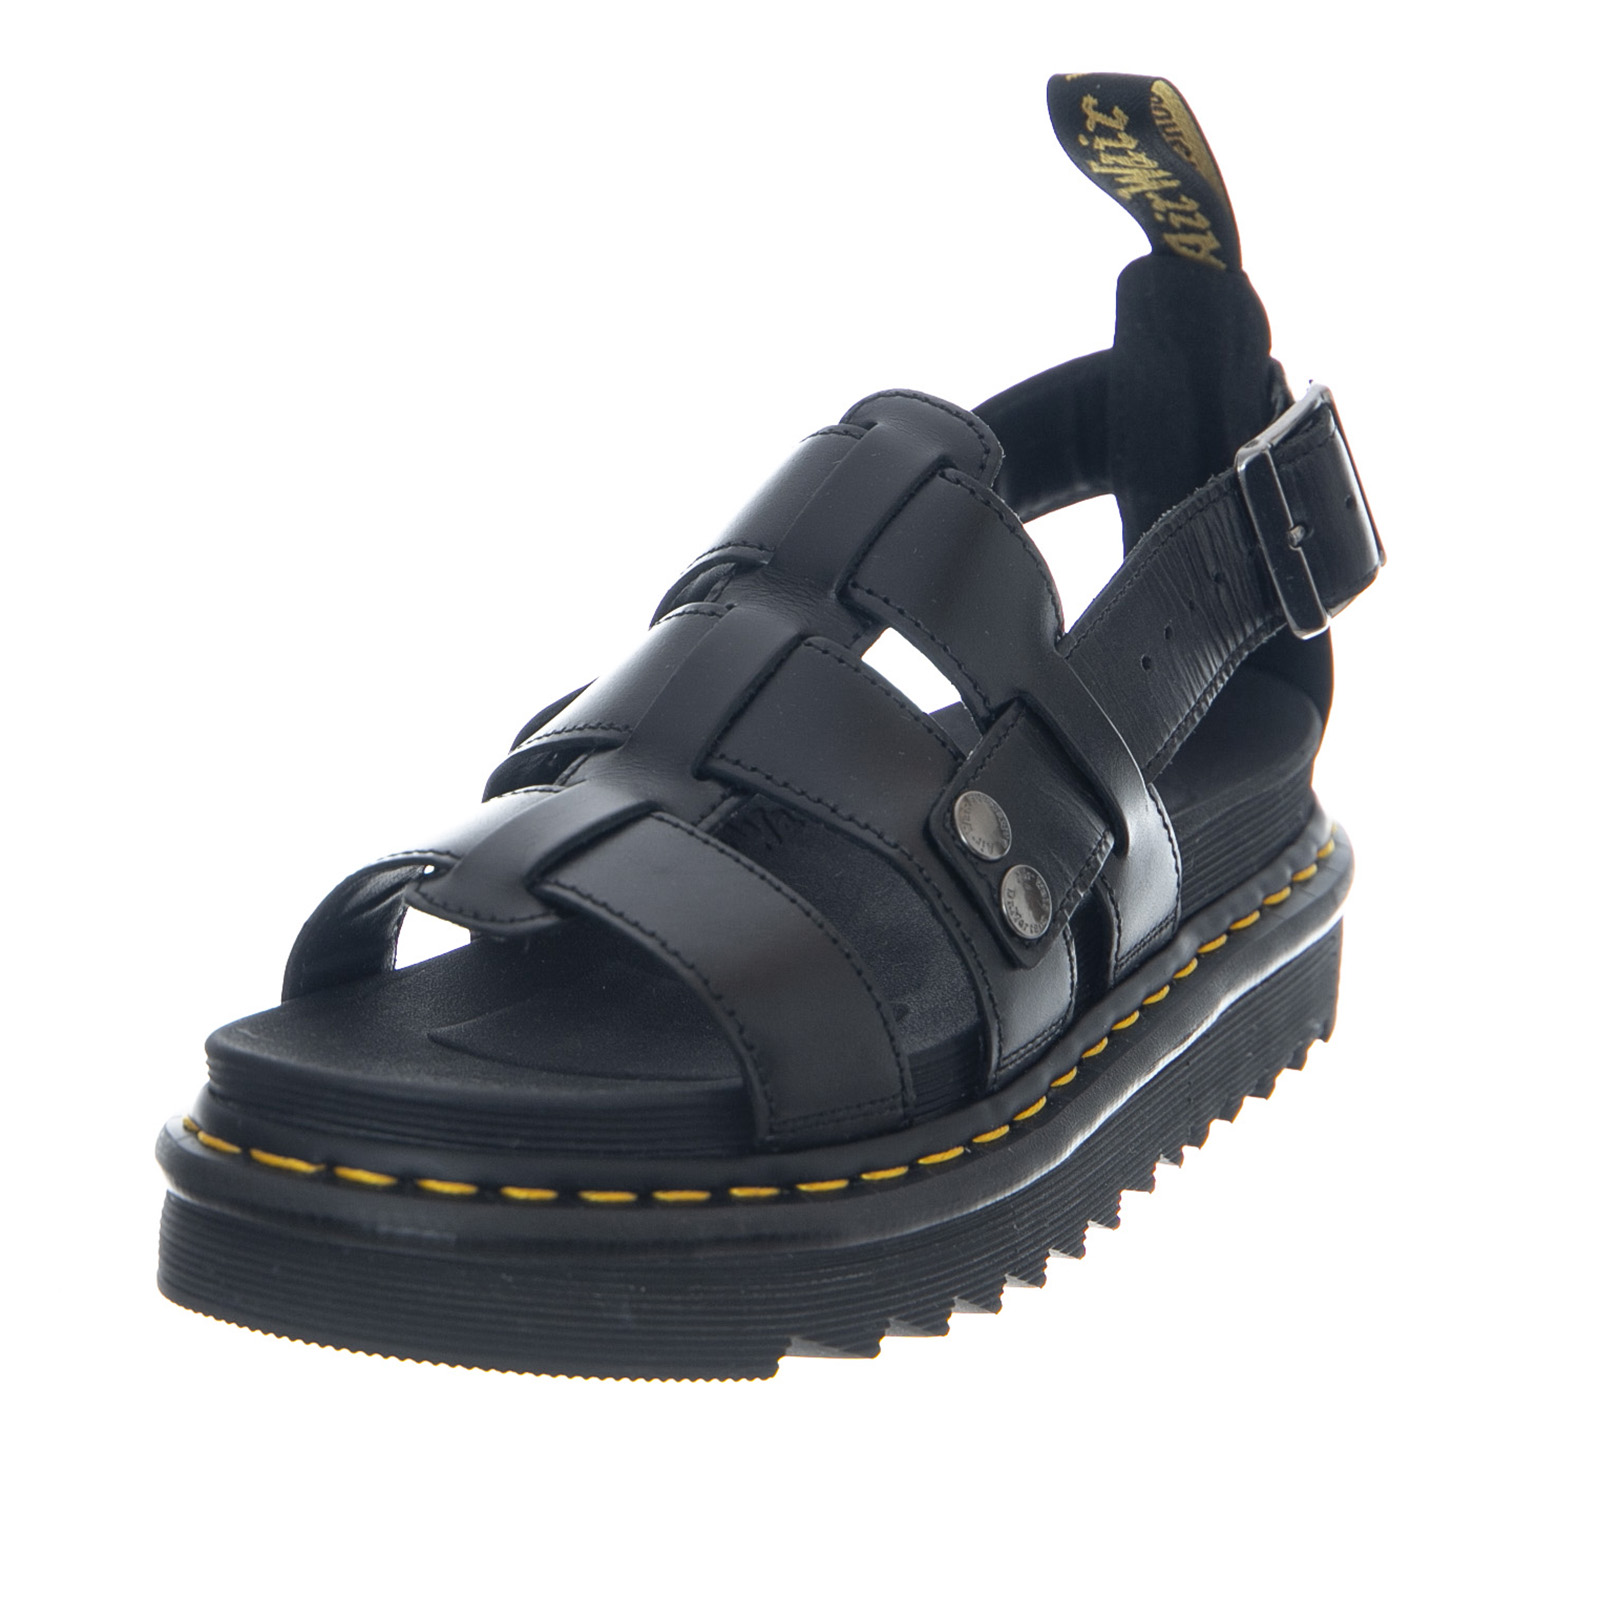 Buy Authentic variety design how to choose Details about Dr.Martens Terry Black Brando - Women's Sandals Black